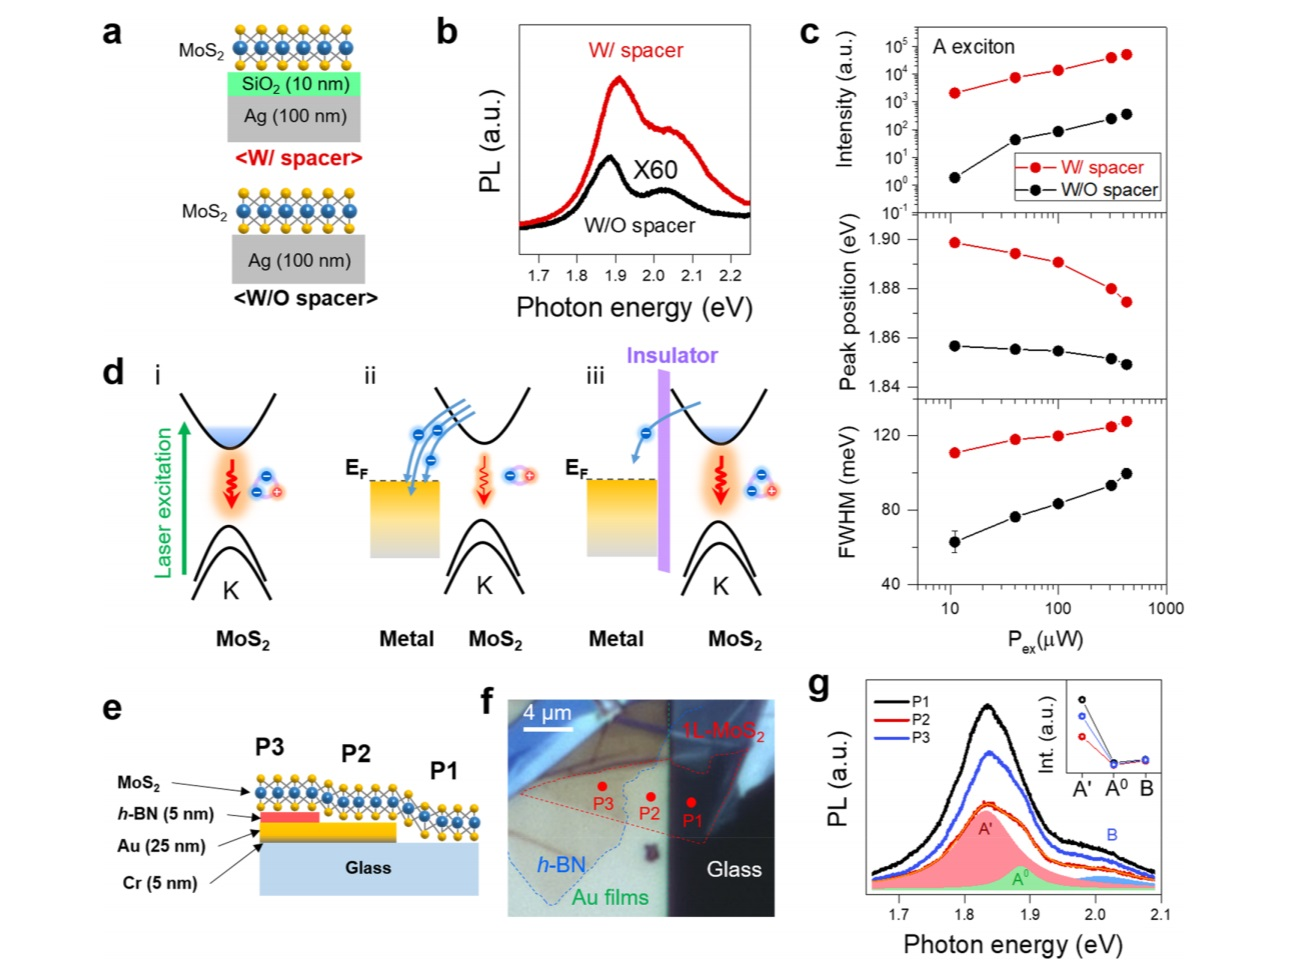 Fig. 4. Charge transfer effects in complex excitons at MoS2-metal contacts. (Reprinted (adapted) with permission from Ref. [9]. Copyright 2020 American Chemical Society.)